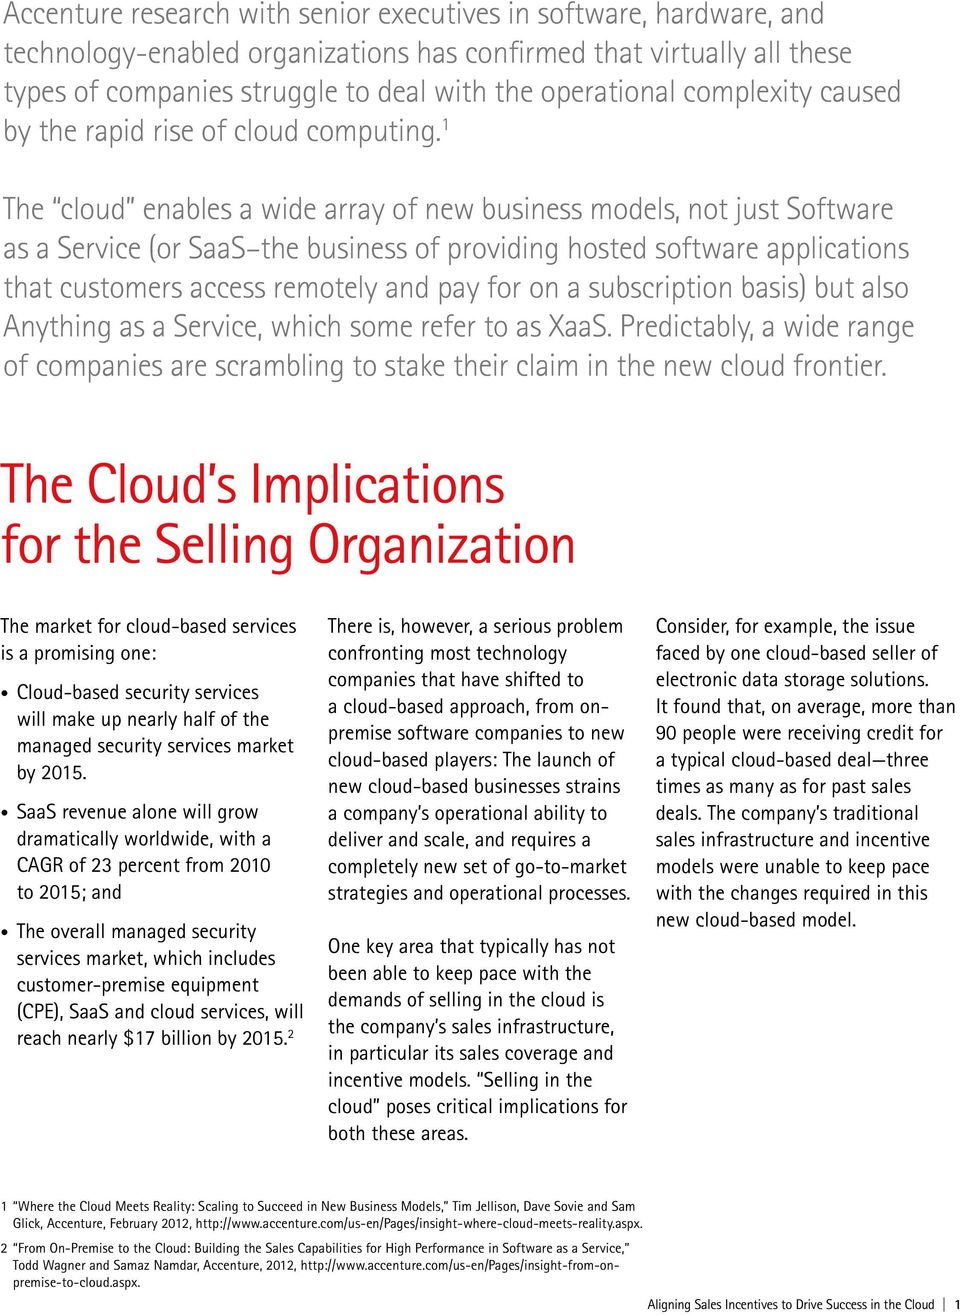 1 The cloud enables a wide array of new business models, not just Software as a Service (or SaaS the business of providing hosted software applications that customers access remotely and pay for on a